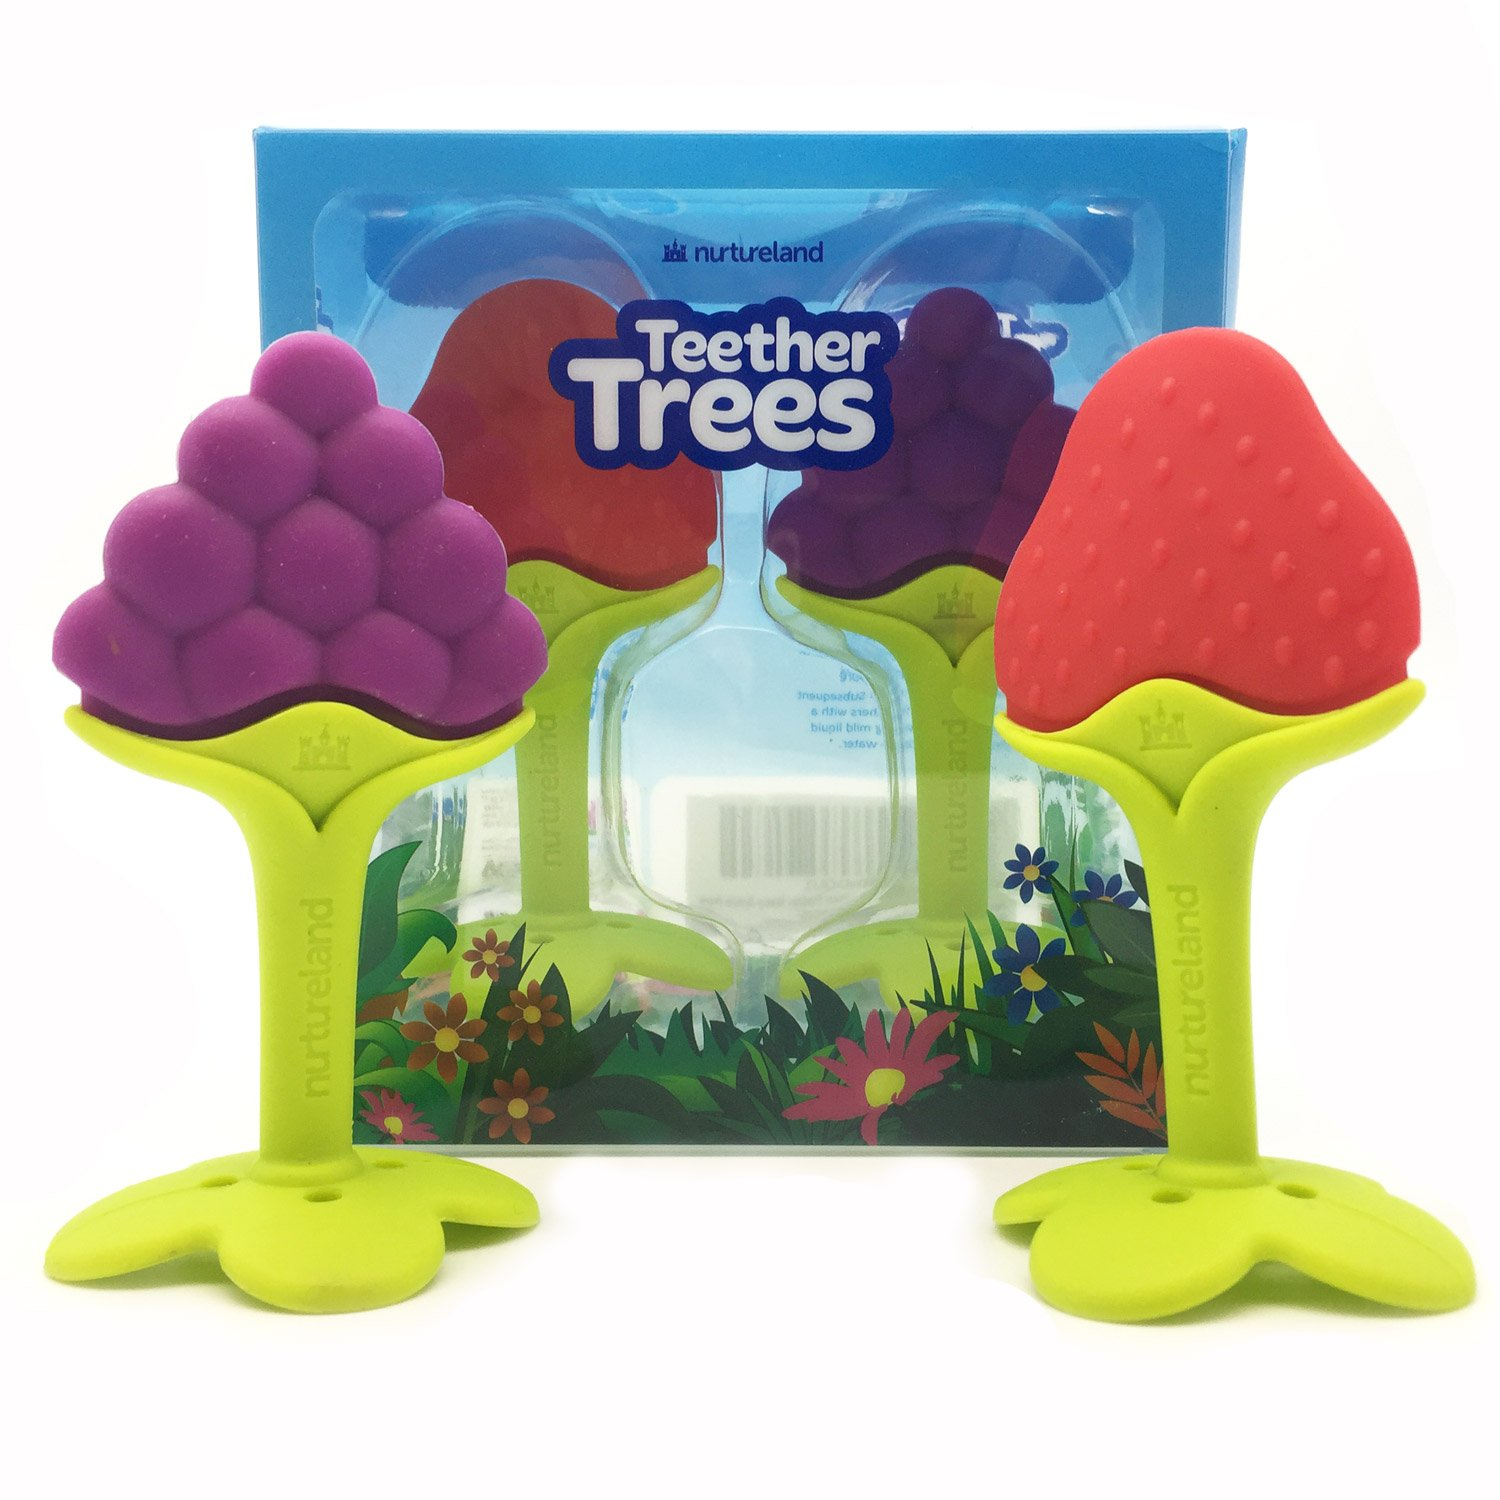 Nurtureland Teething Toys for Best Baby Teether Massage TREES Molar Teeth Soother with Soft Sensory BPA Free Natural Silicone Teethers Toy for Babies Make Your Happy Infant Smile Easy Now